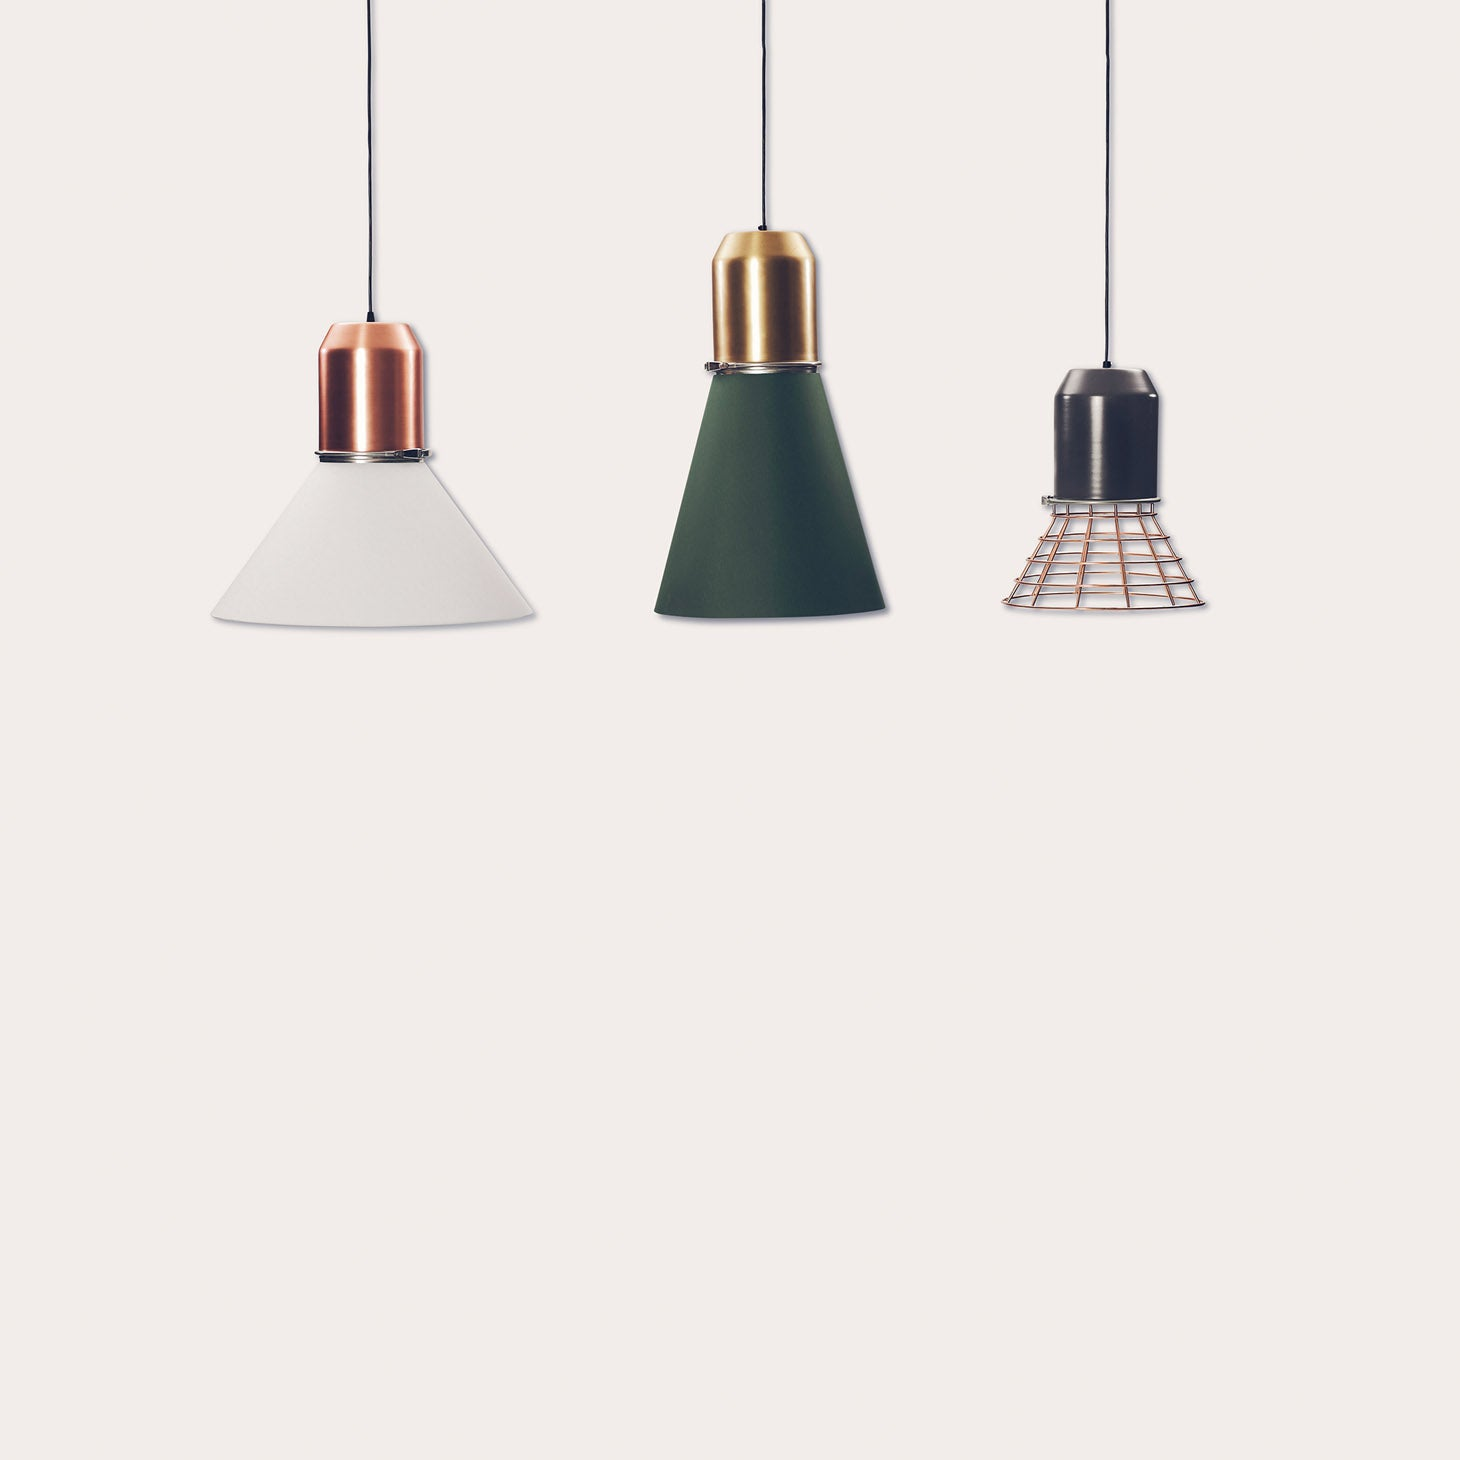 Bell Light Lighting Sebastian Herkner Designer Furniture Sku: 001-160-10074